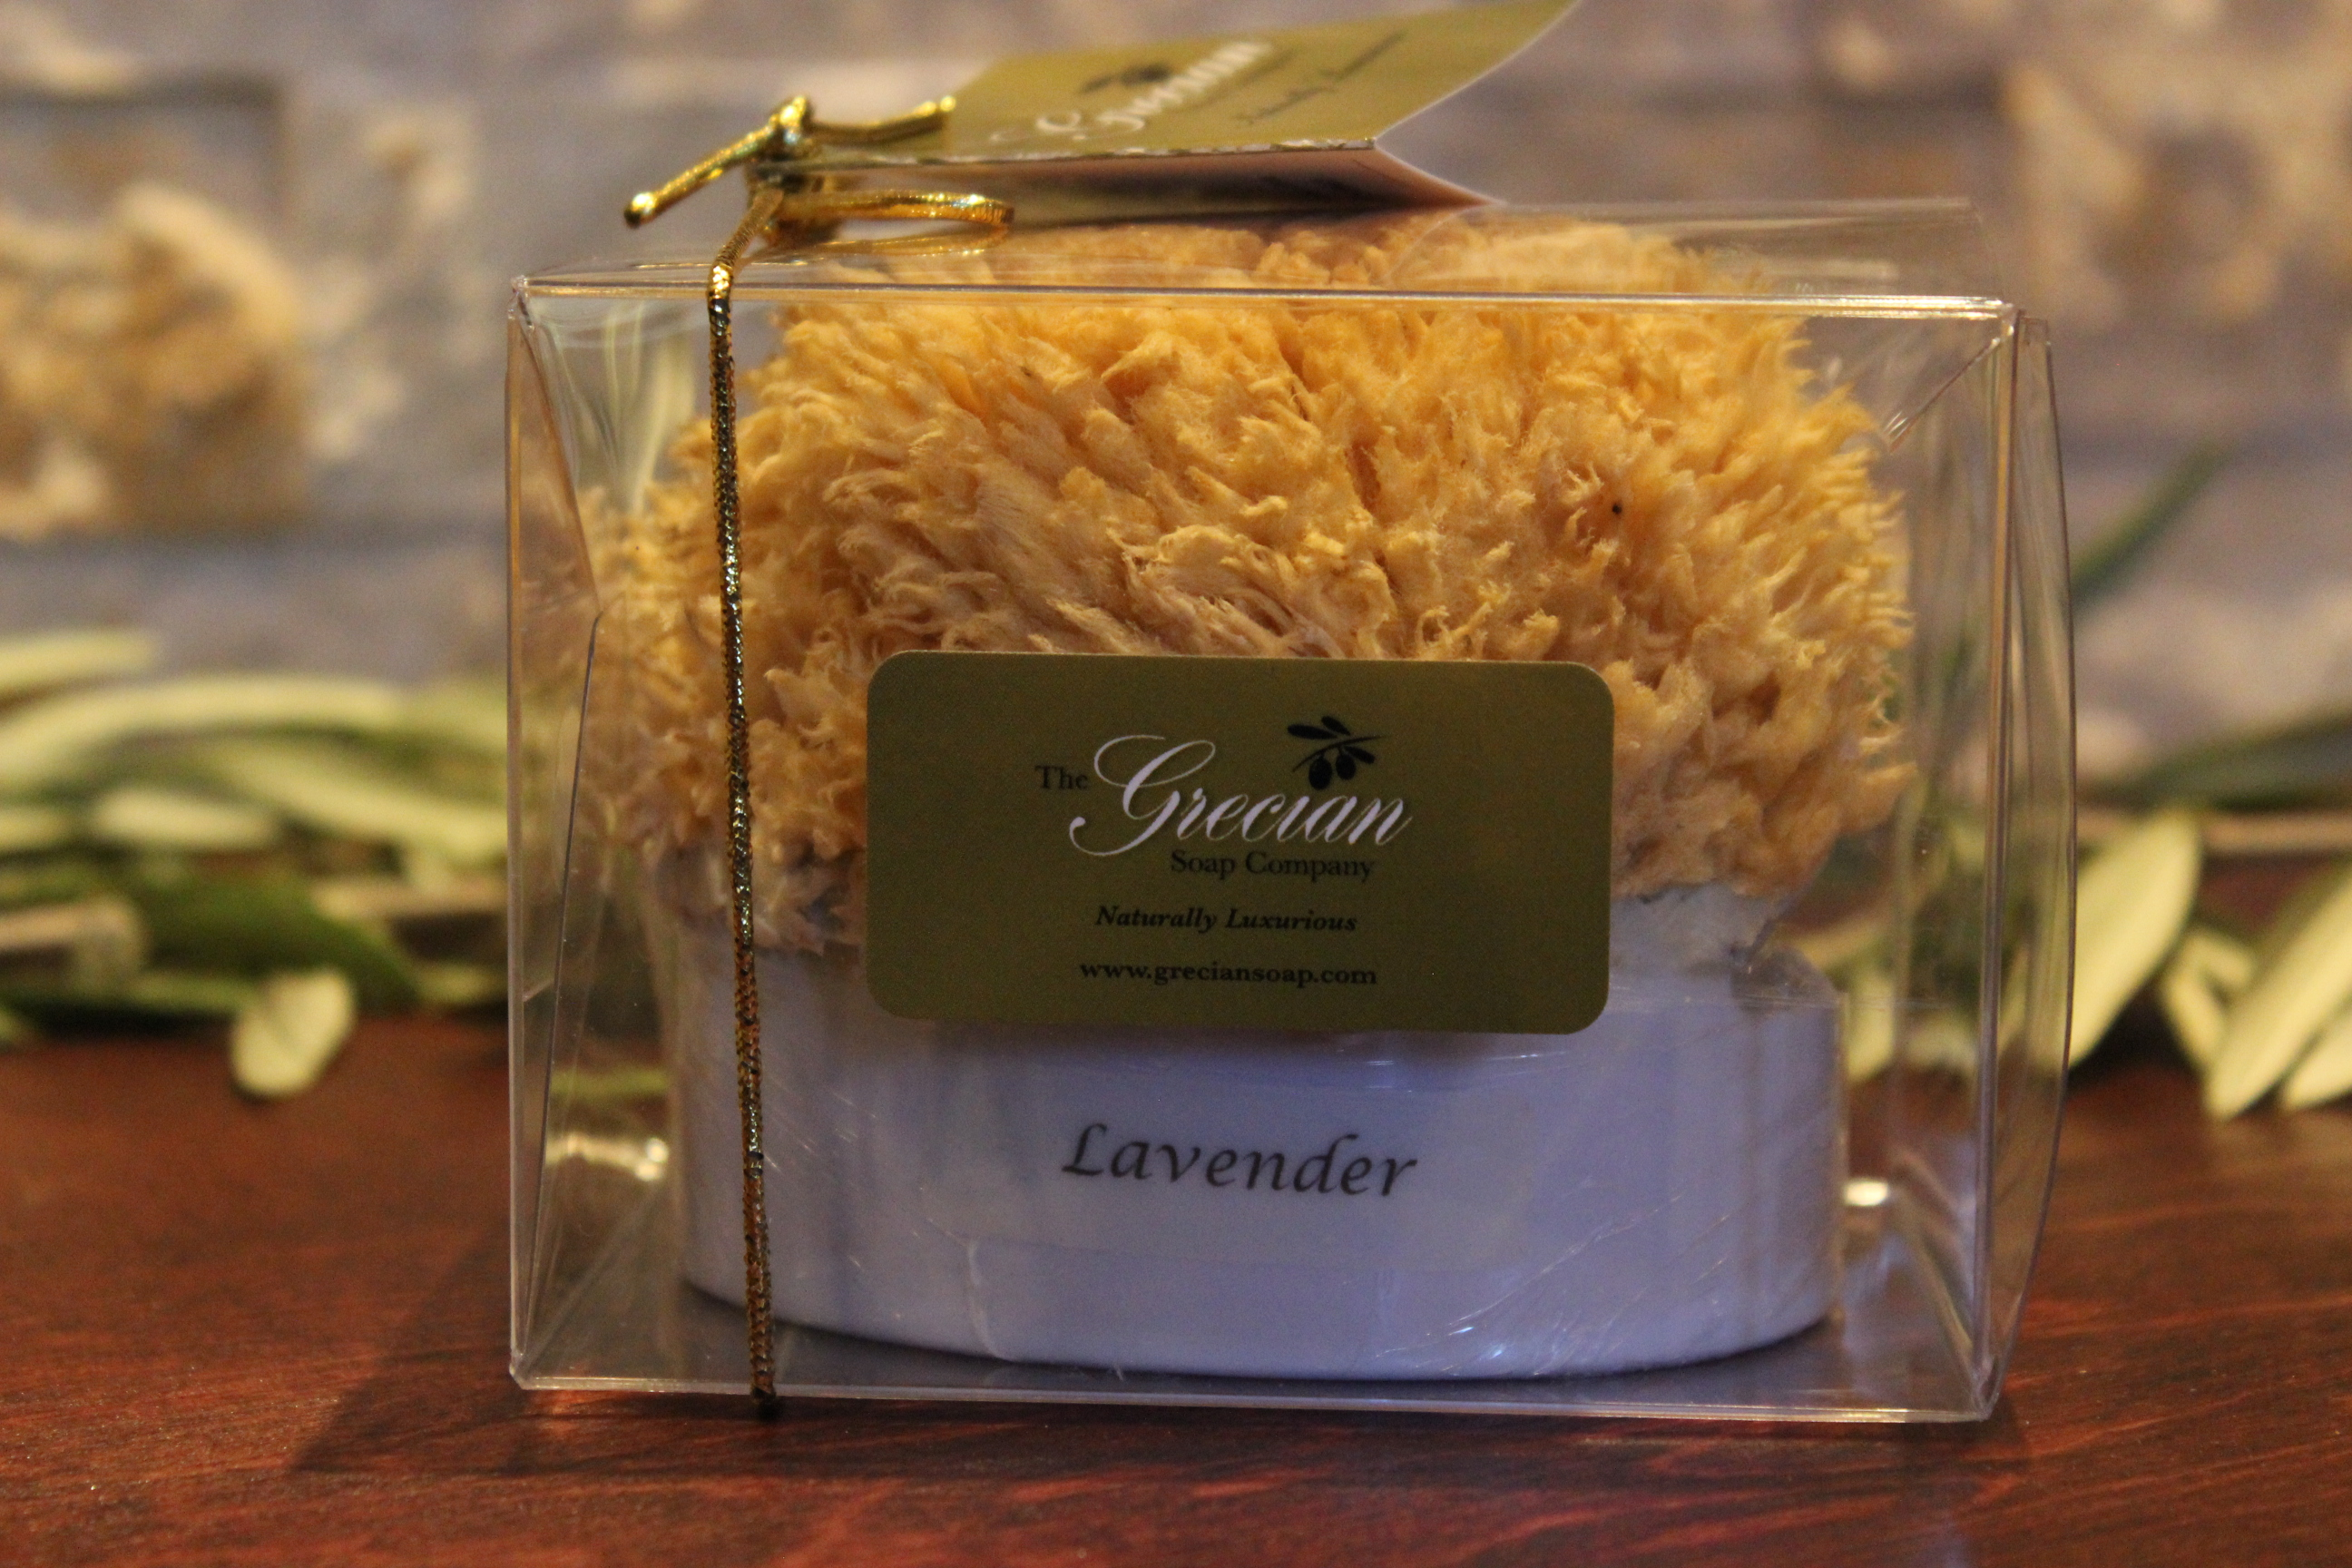 Lavender scented goat's milk soap embedded in a natural sea sponge by Grecian Soap Company